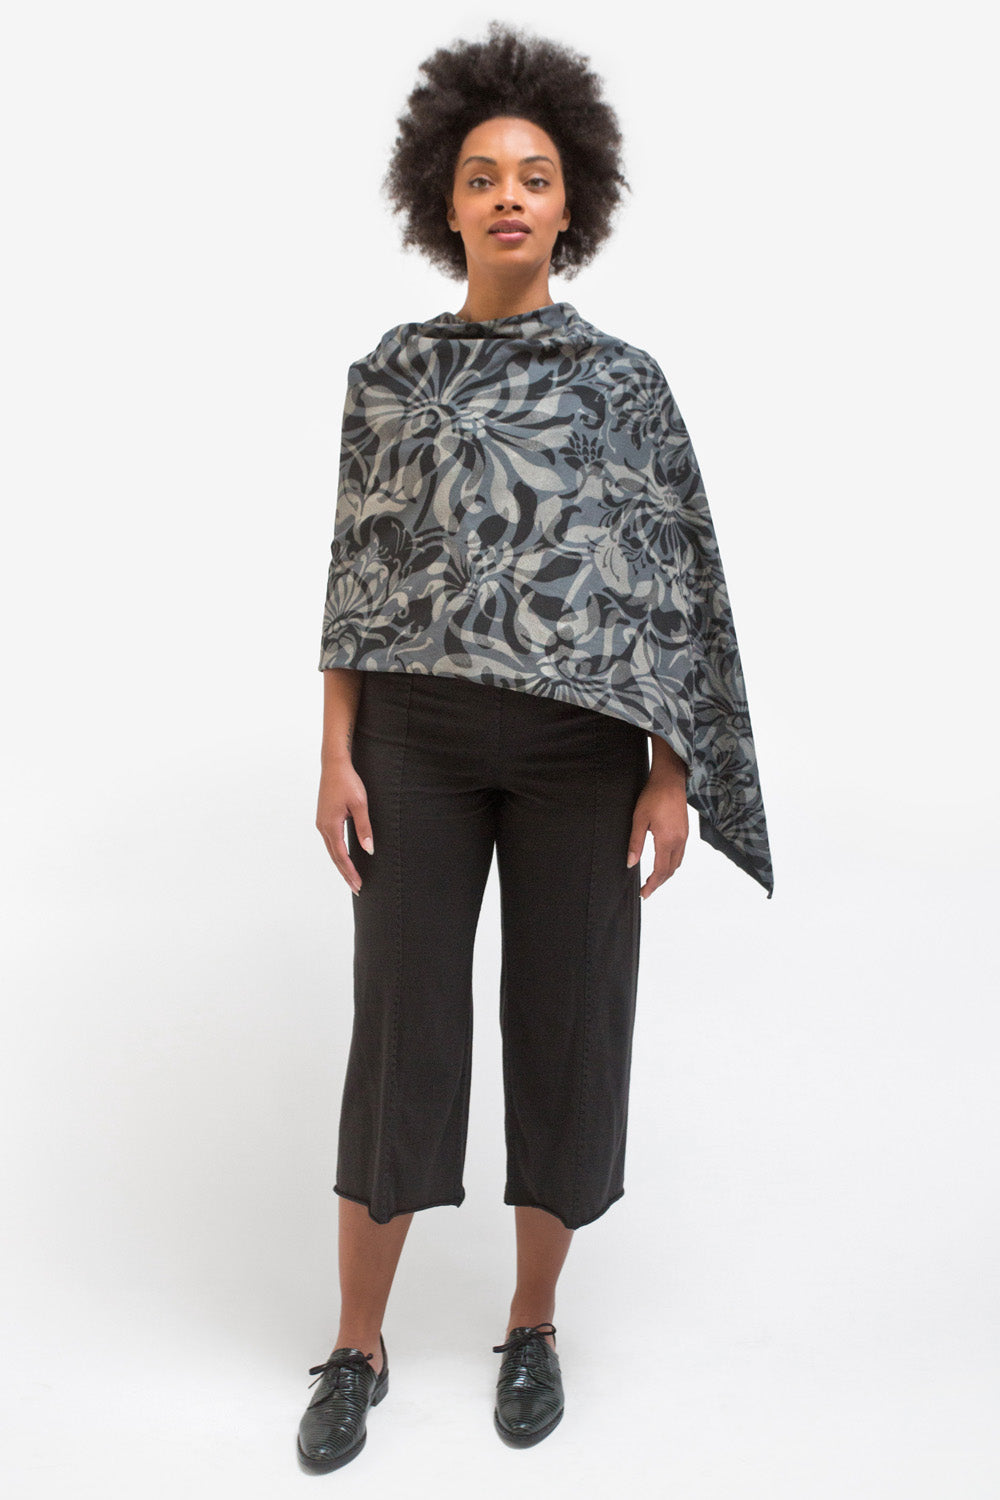 The School of Making Maggie's Dream Poncho Hand-Sewn DIY Kit